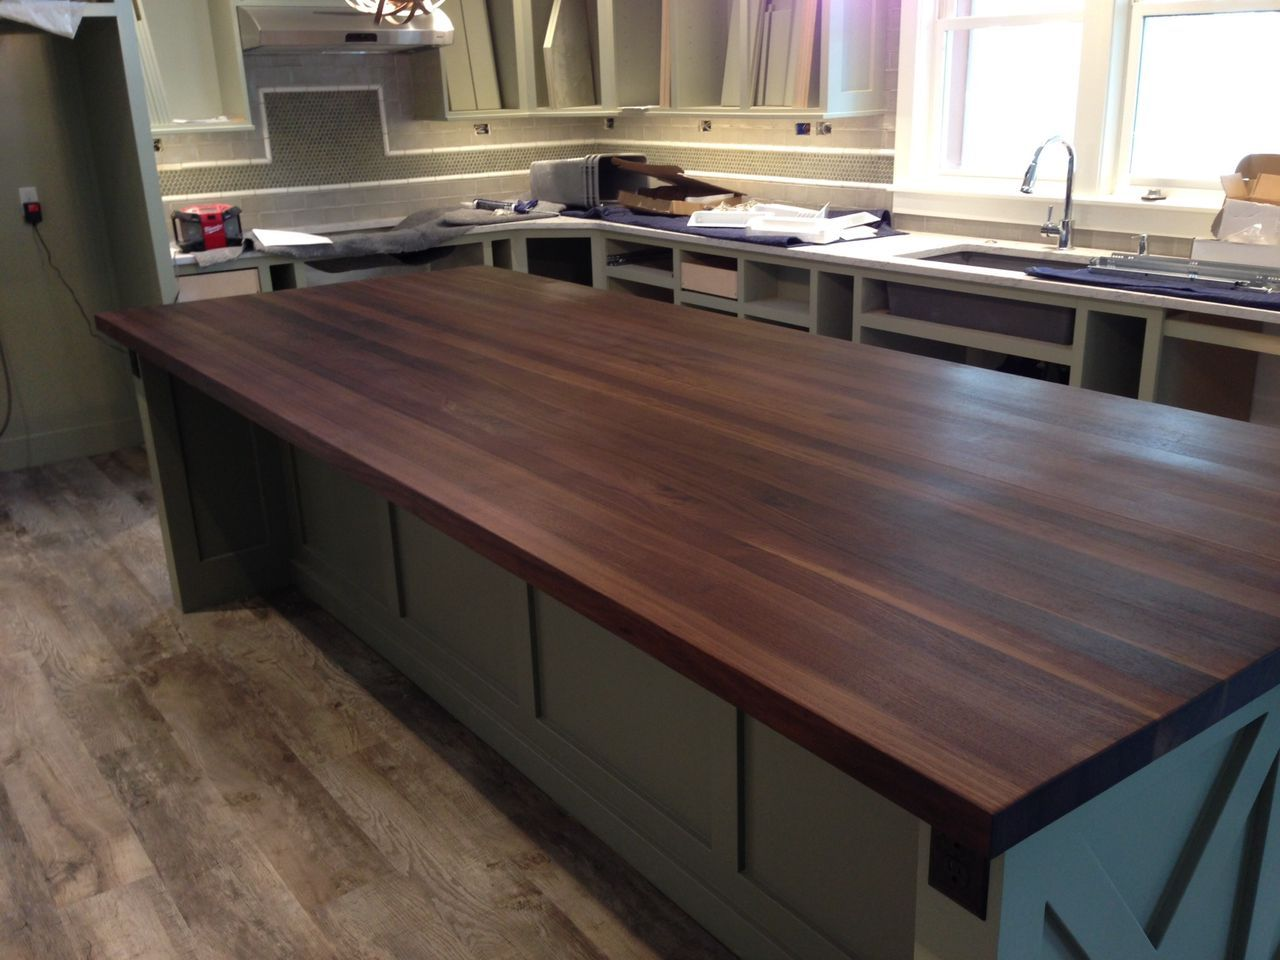 Custommade walnut butcher block countertop by mcclure tables